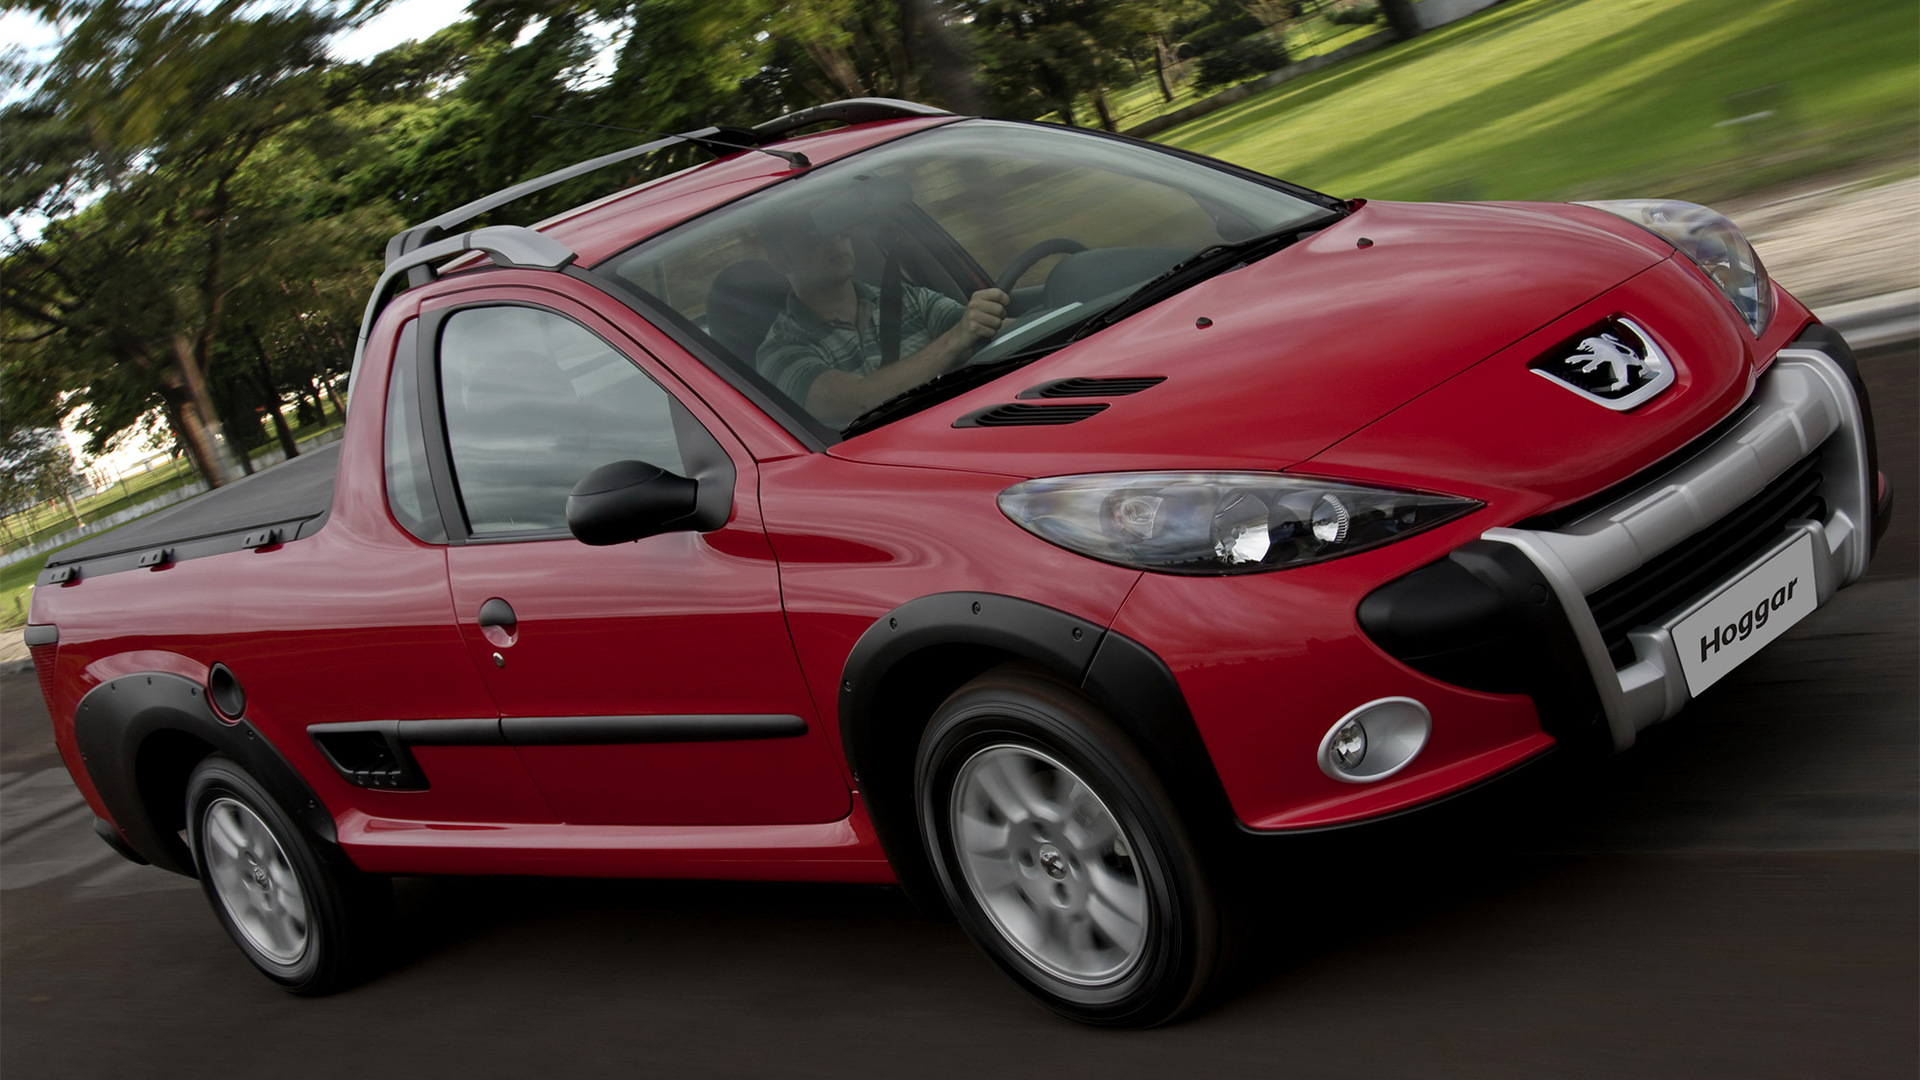 2010 Peugeot Hoggar Escapade - Wallpapers and HD Images ...